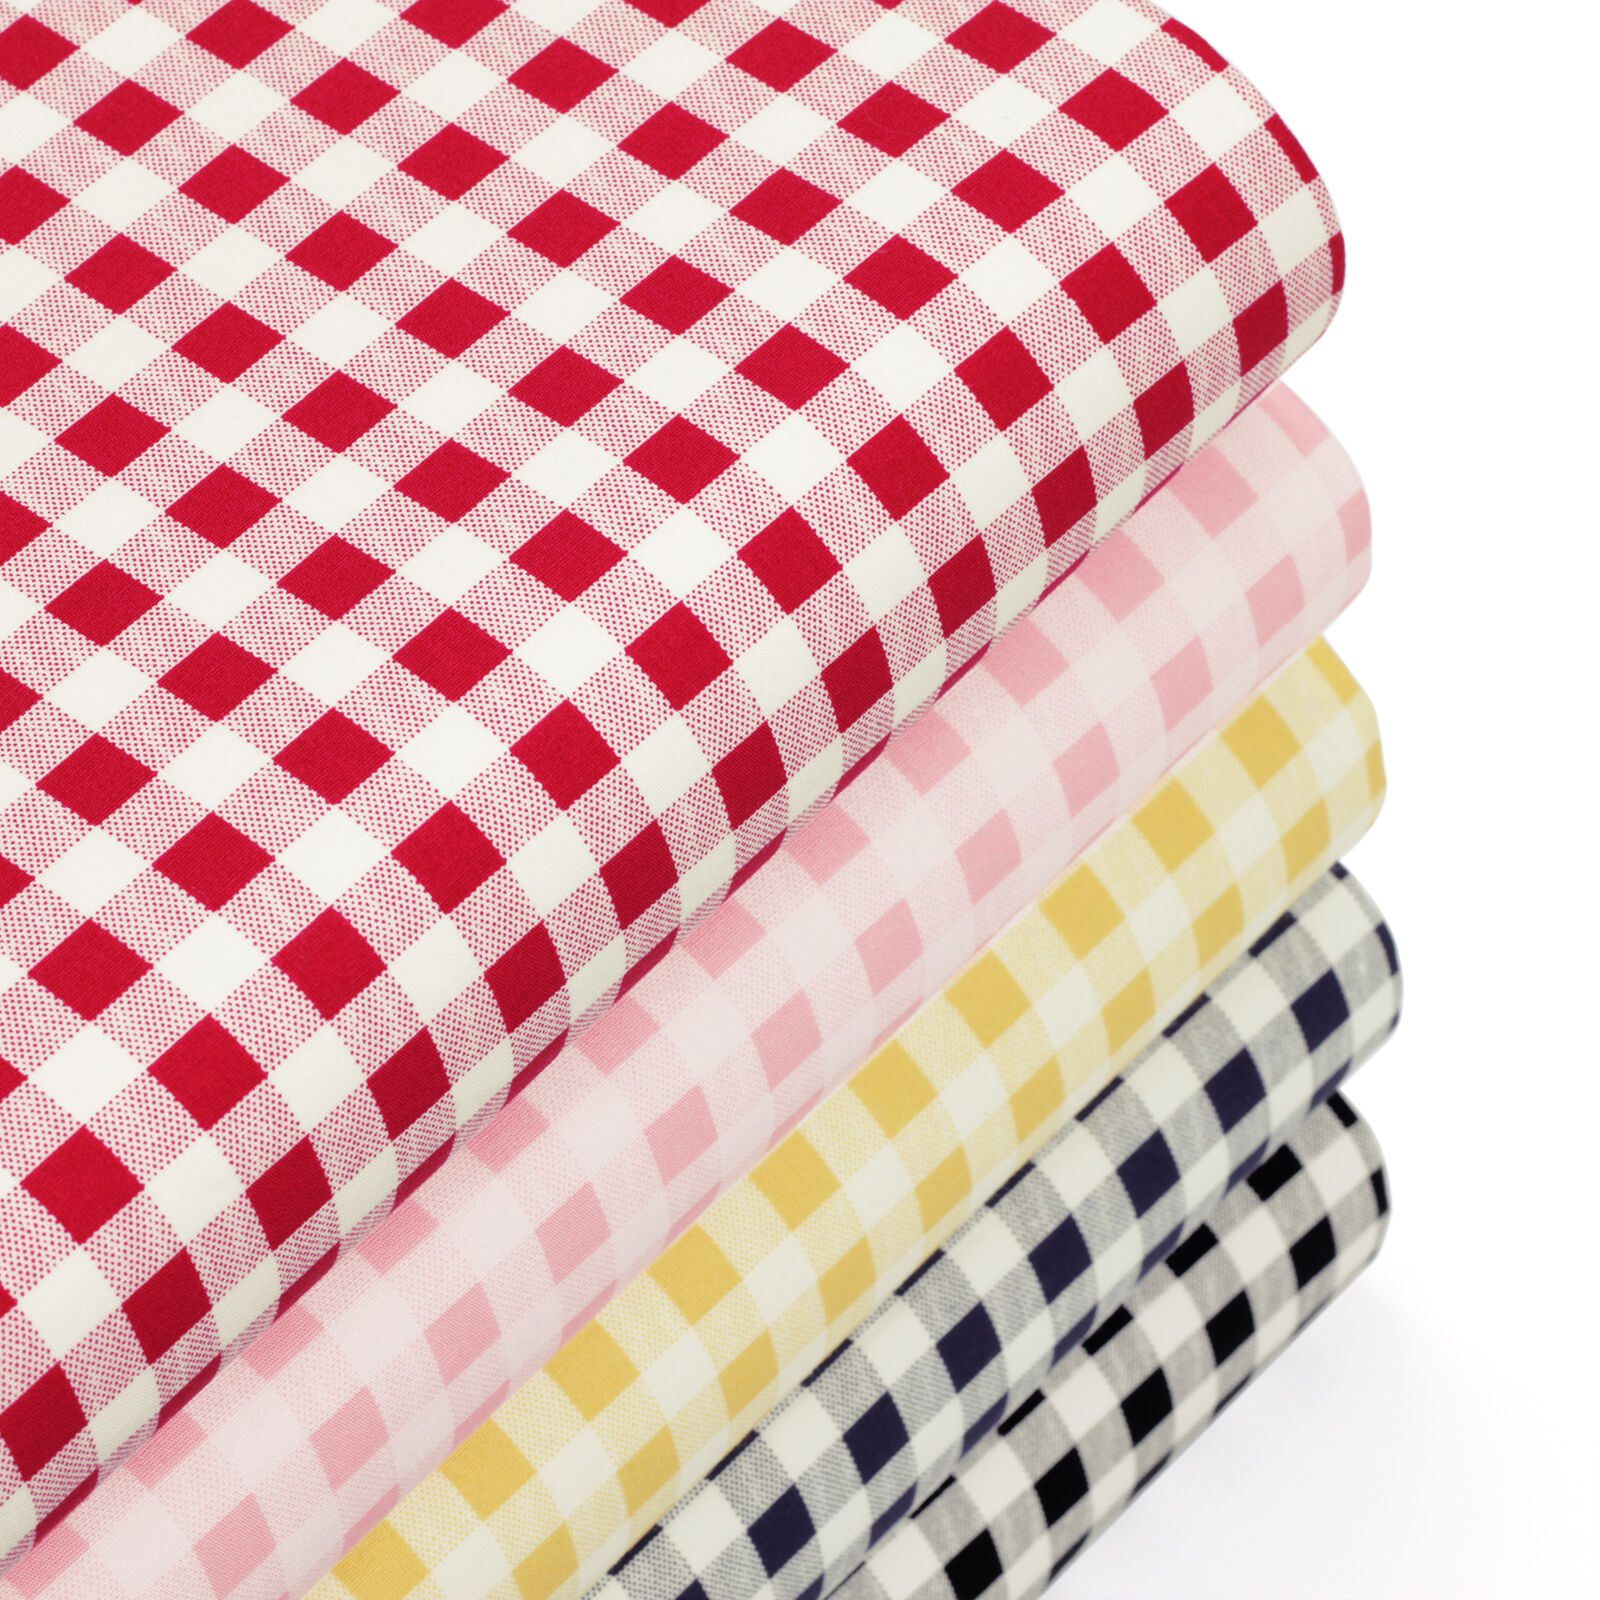 Classic london gingham plaid check retro printed cotton for Printed cotton fabric